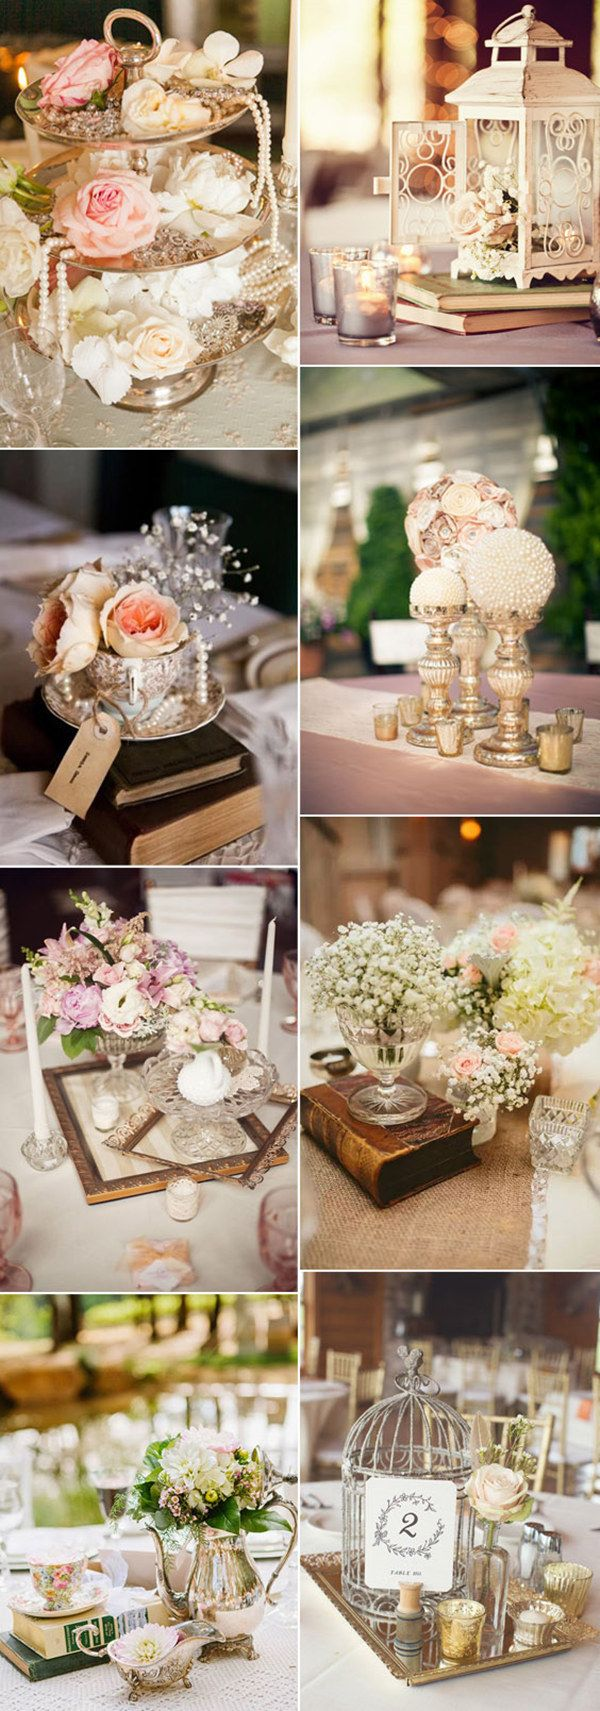 Top 10 trending wedding ideas for 2017 youll love vintage wedding top 10 trending wedding ideas for 2017 youll love oh best day ever vintage wedding centerpieceswedding junglespirit Choice Image